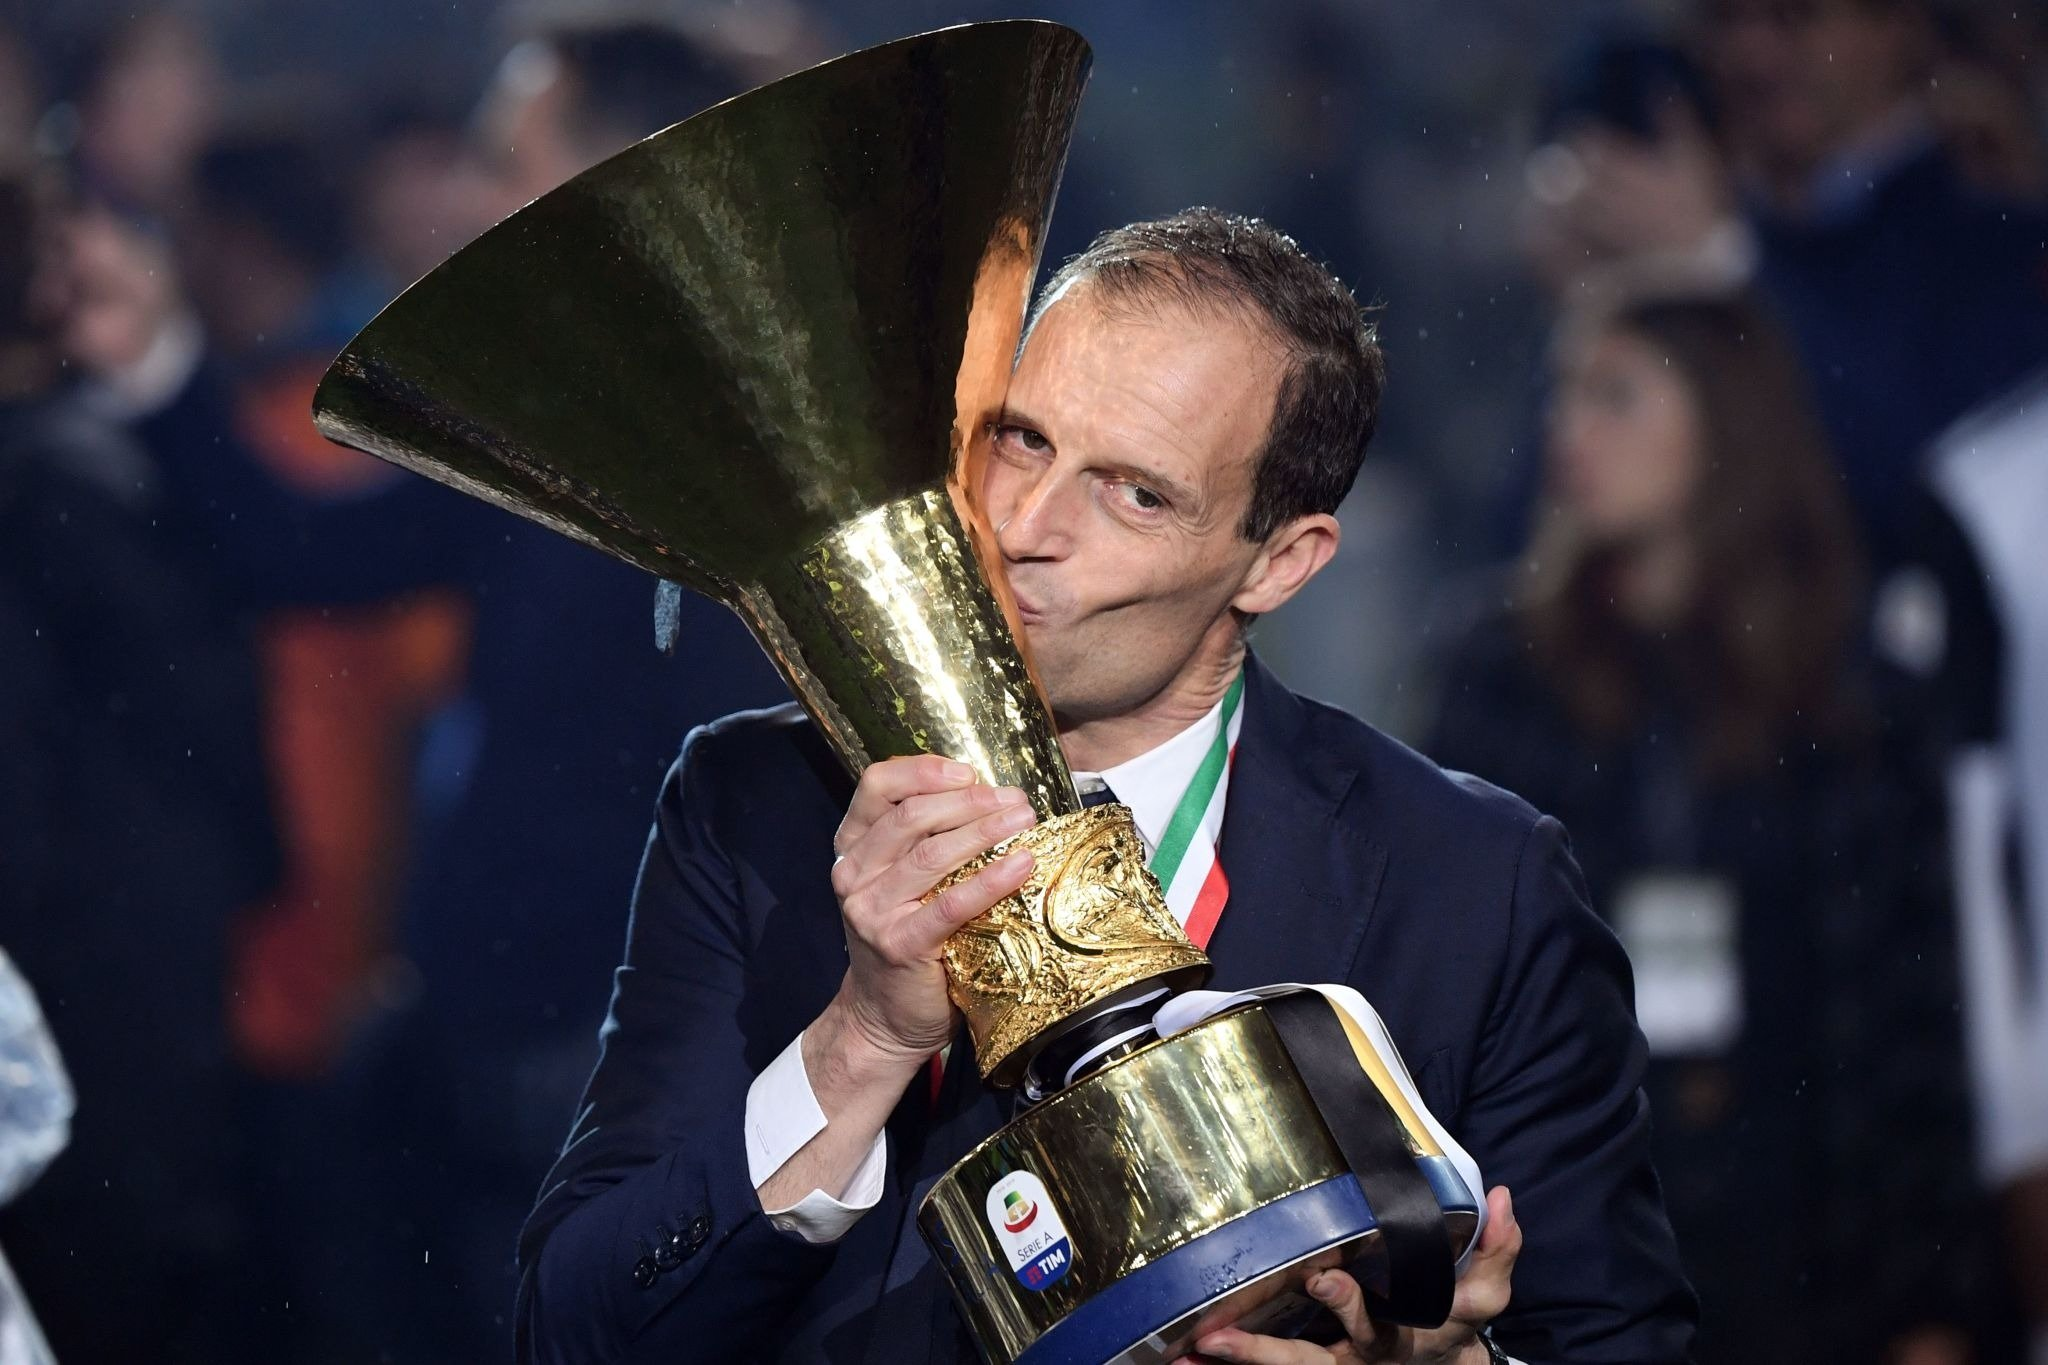 Massimiliano Allegri, a name that will be engraved in Juventus history books. https://t.co/hQUJCClzjs